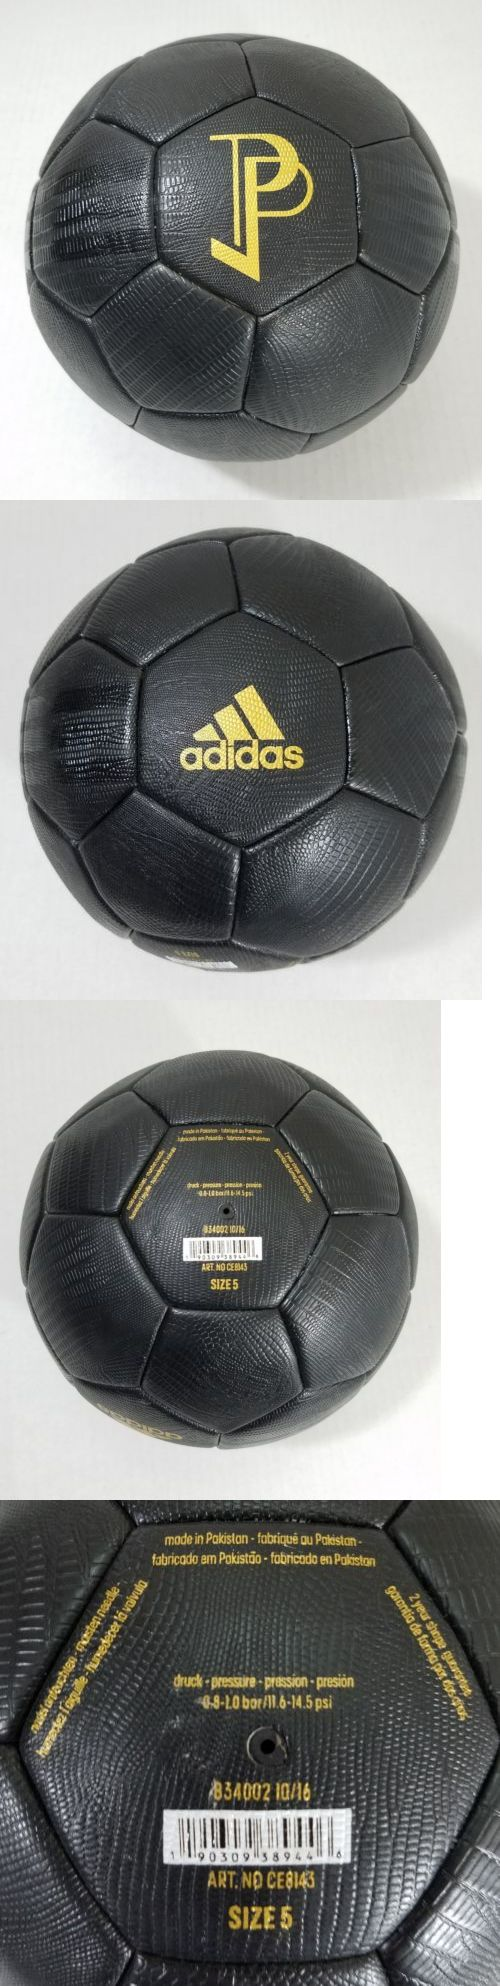 Balls 20863: Adidas X Paul Pogba Limited Soccer Ball Black Gold Manchester United Ce8143 Rare -> BUY IT NOW ONLY: $59.99 on eBay!